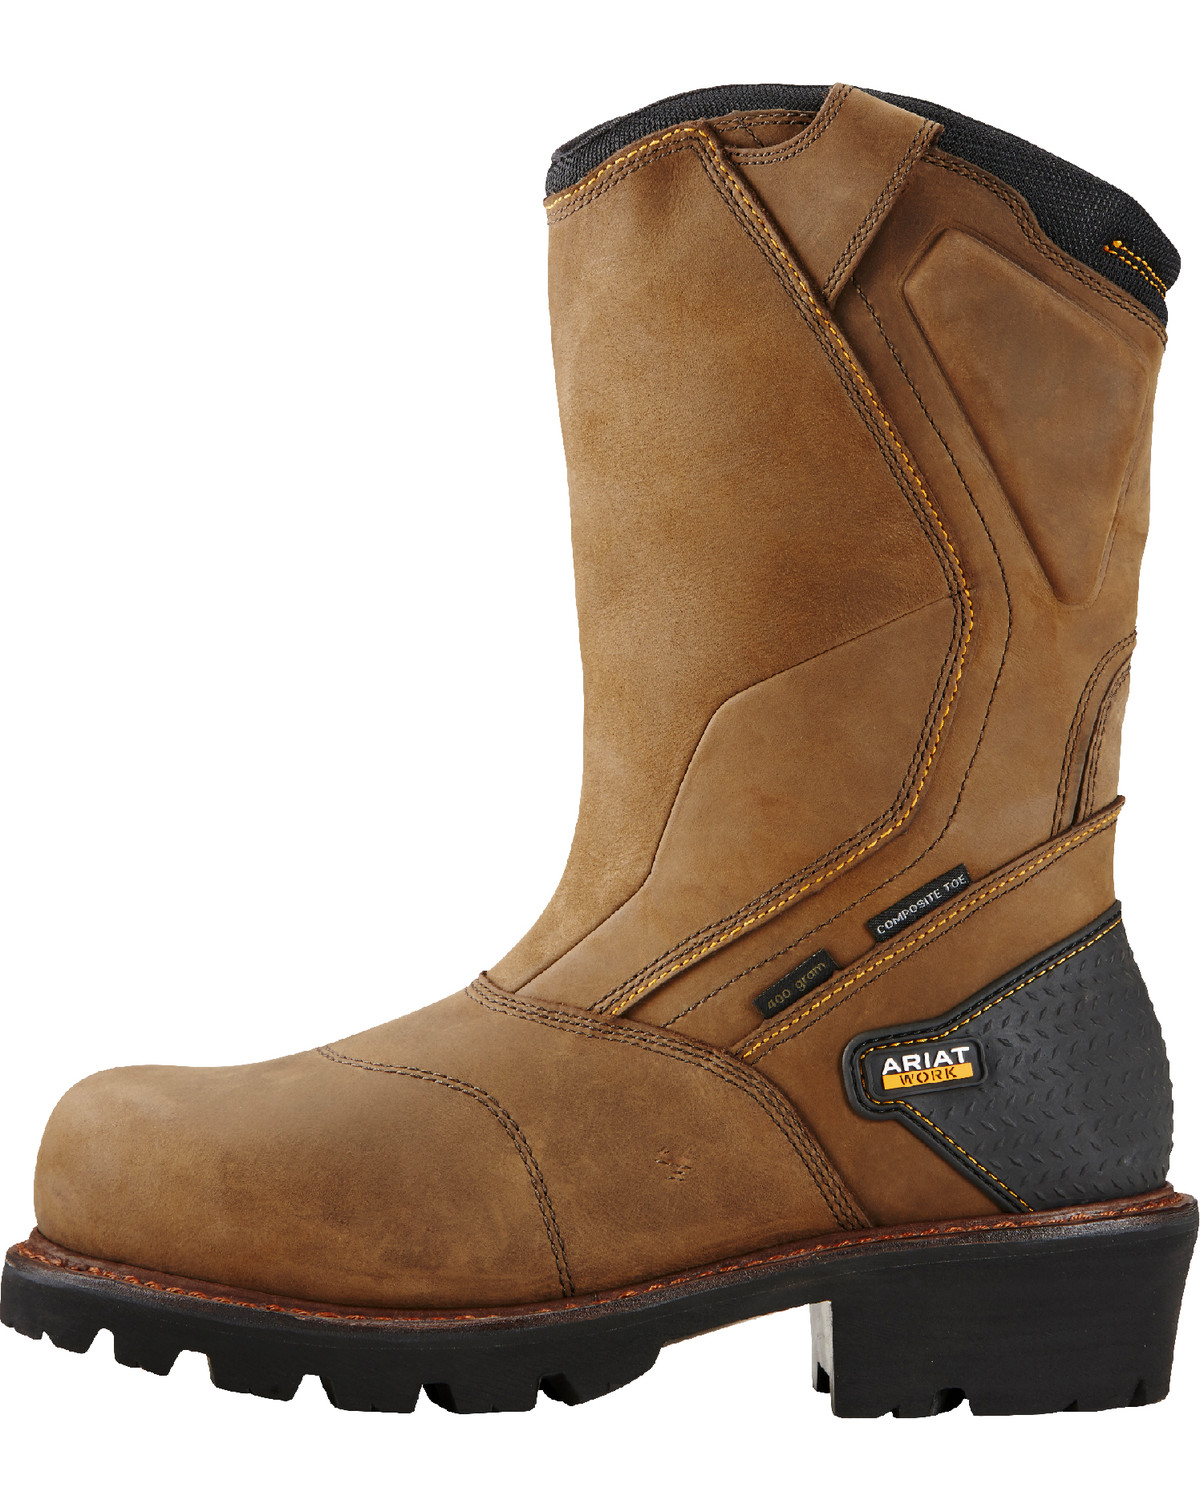 Ariat Men S Powerline Composite Toe Insulated Waterproof